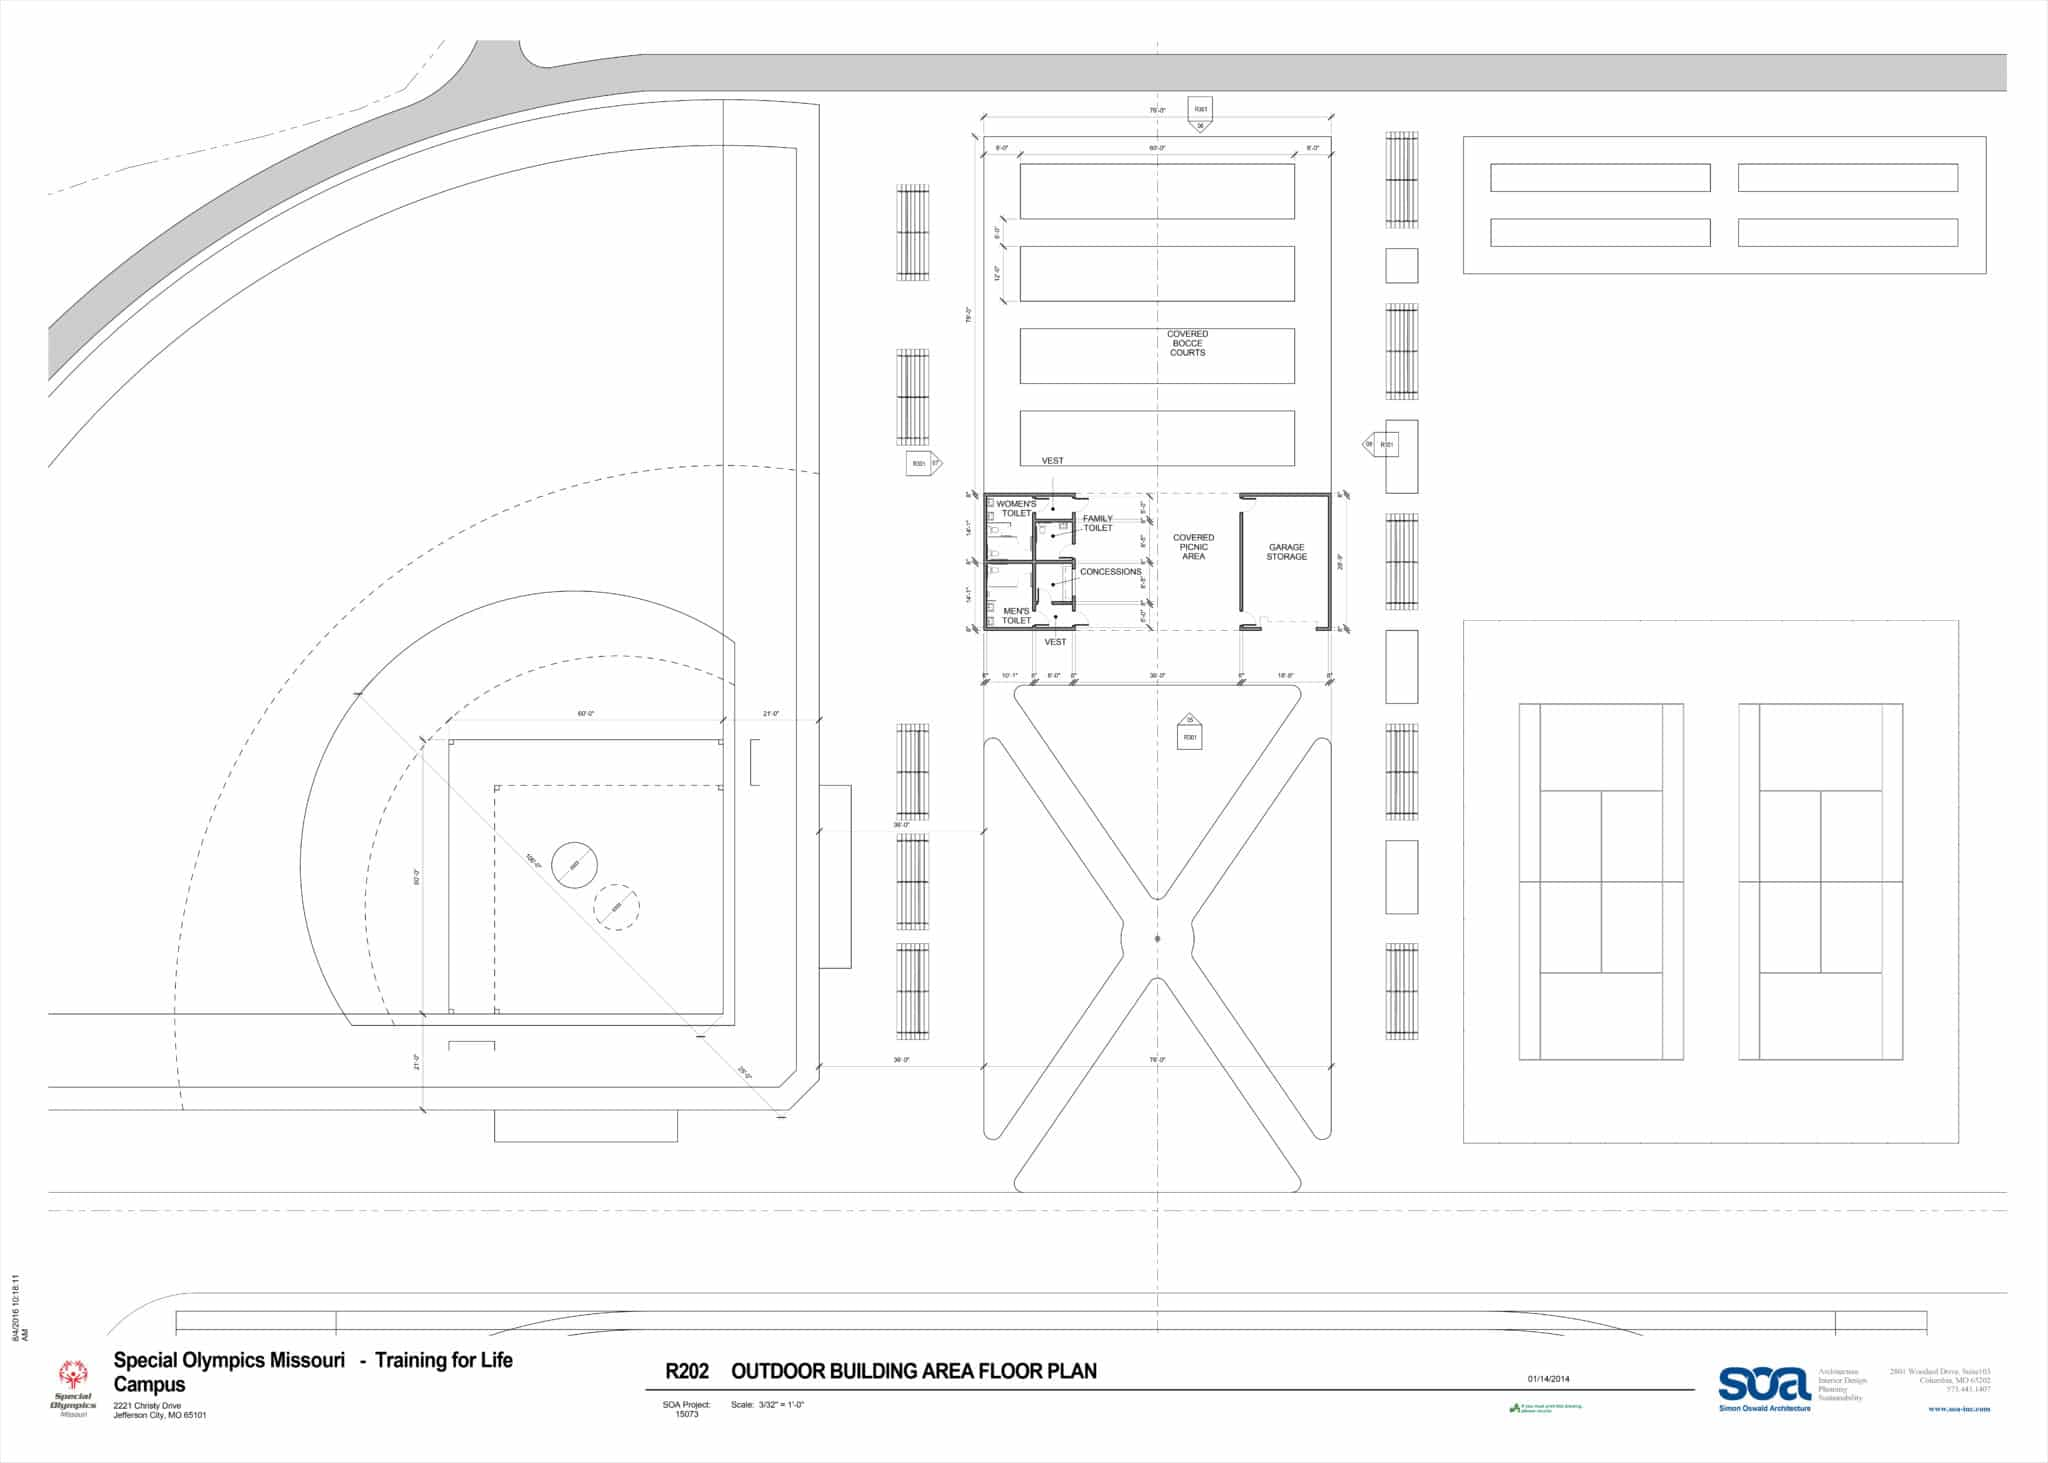 Blueprint of the outdoor facilities at the Training for Life Campus